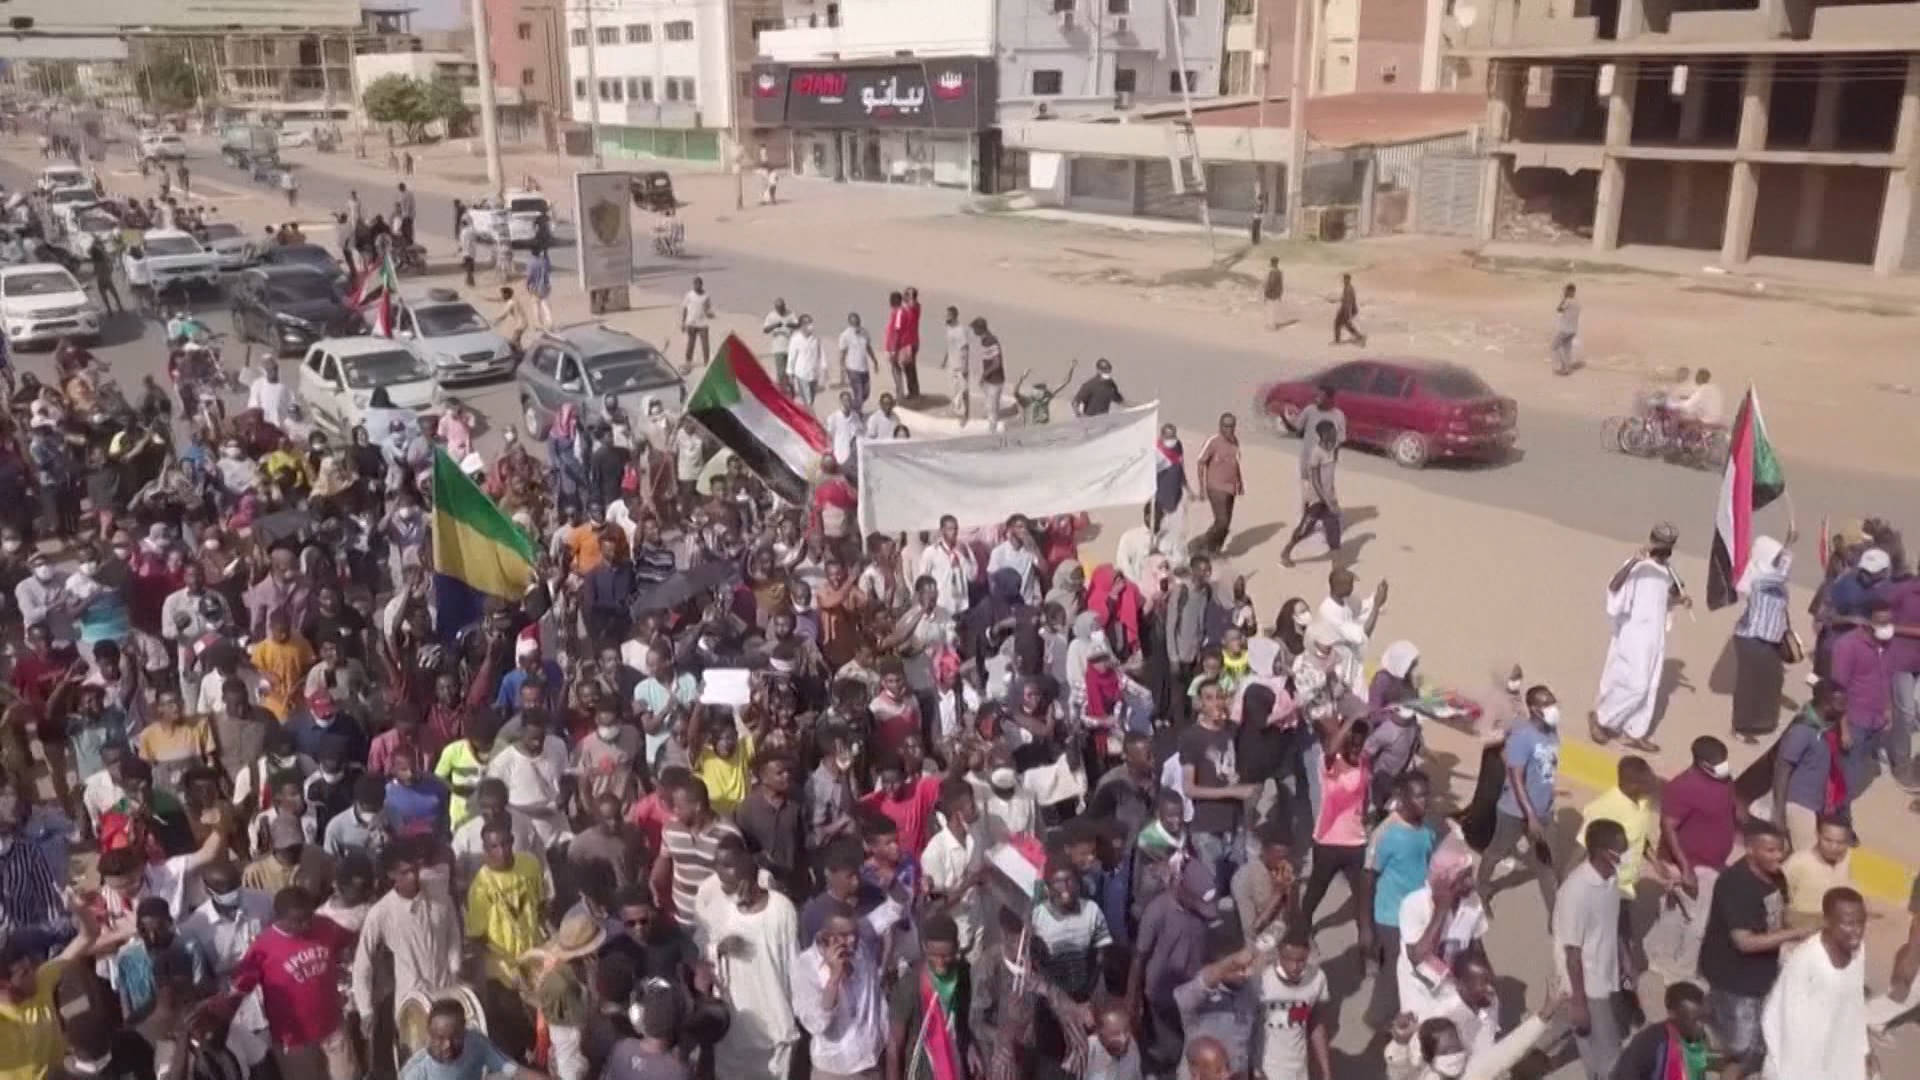 """Read more about the article """"Devastation and Anger"""" in Sudan as Military Coup Halts Country's Democratic Transition"""